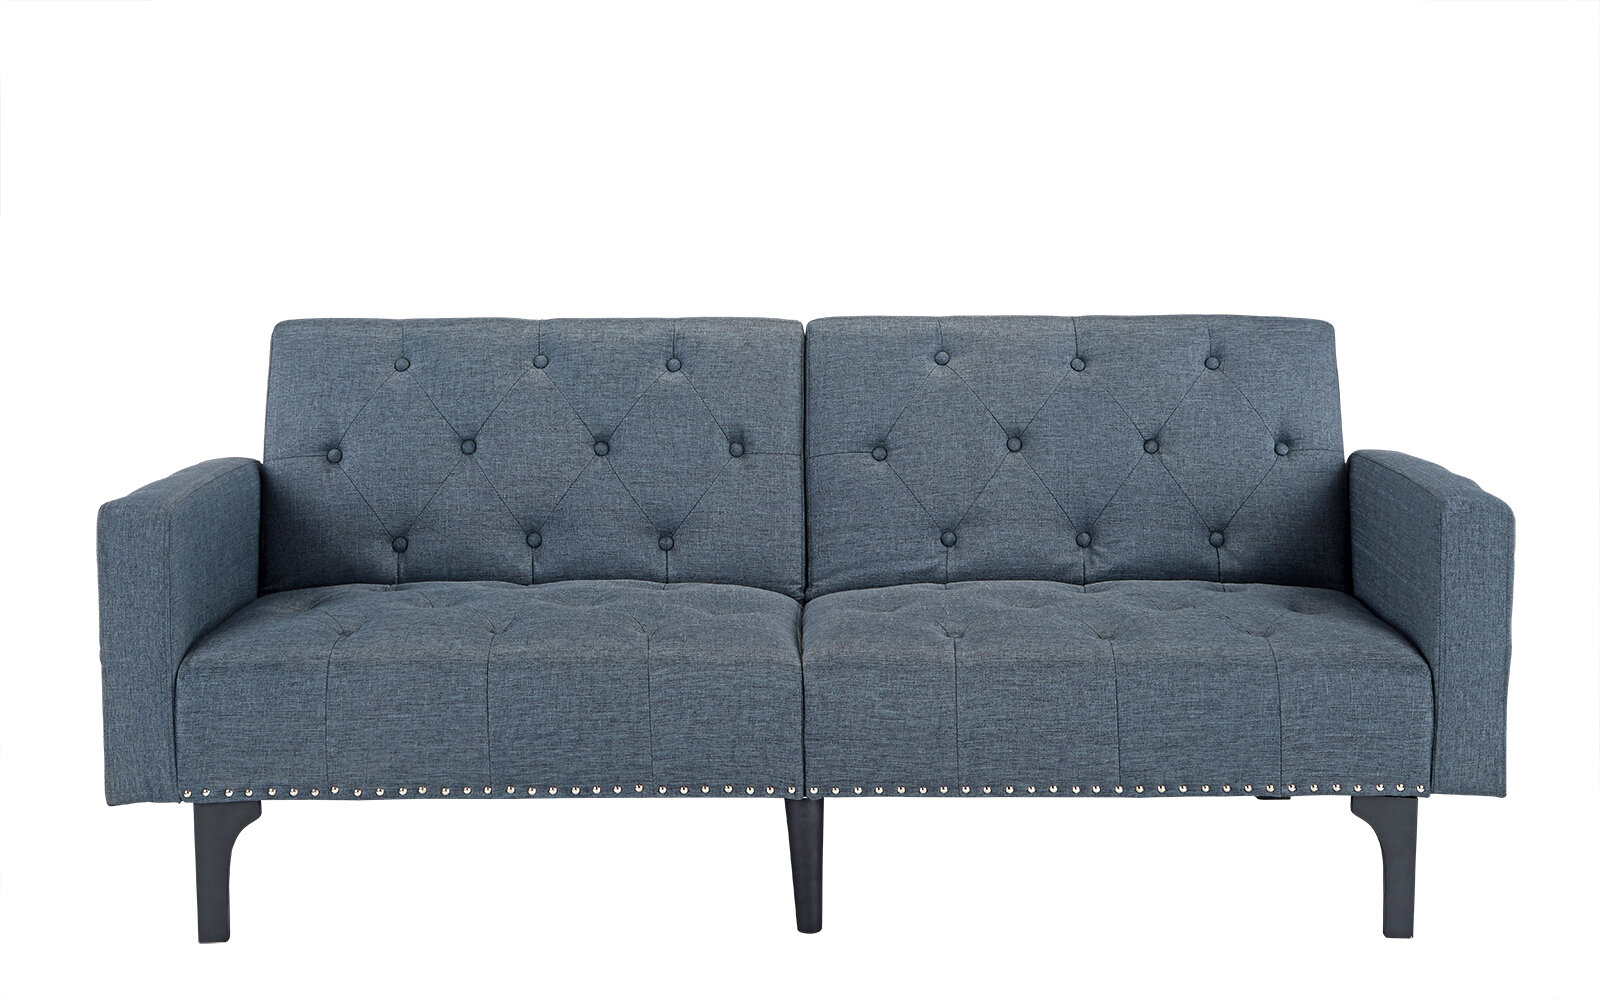 Wrought Studio Rather Modern Tufted Reclining Sleeper Sofa & Reviews ...